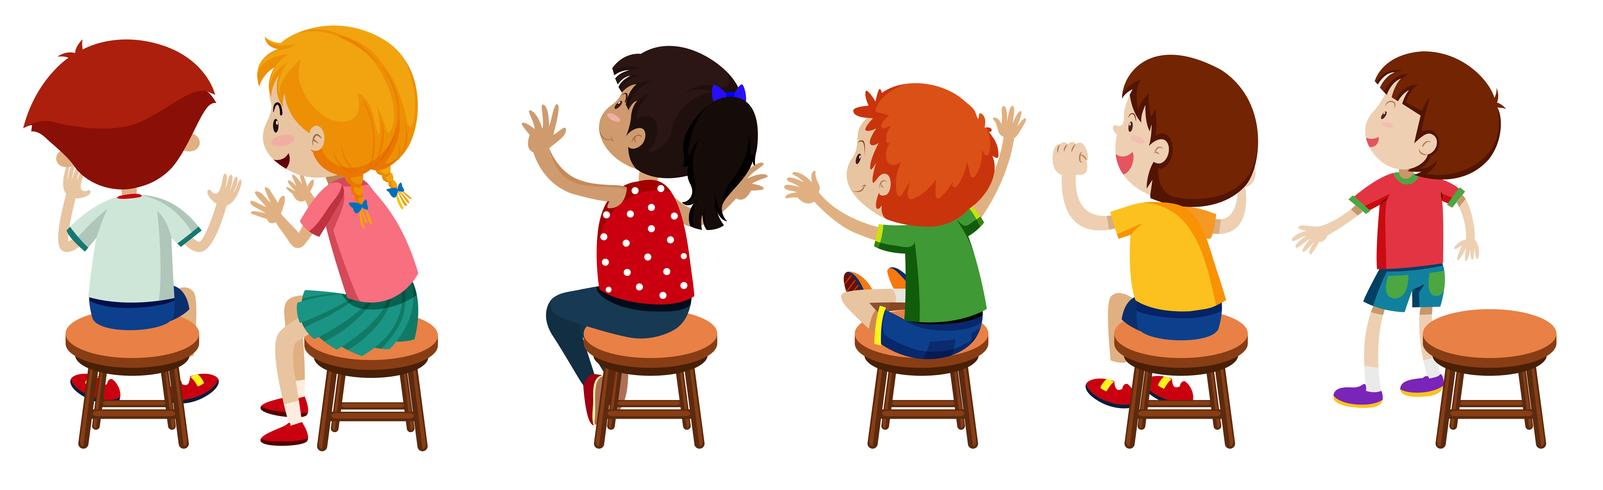 Children sitting on chairs - Download Free Vector Art, Stock Graphics & Images